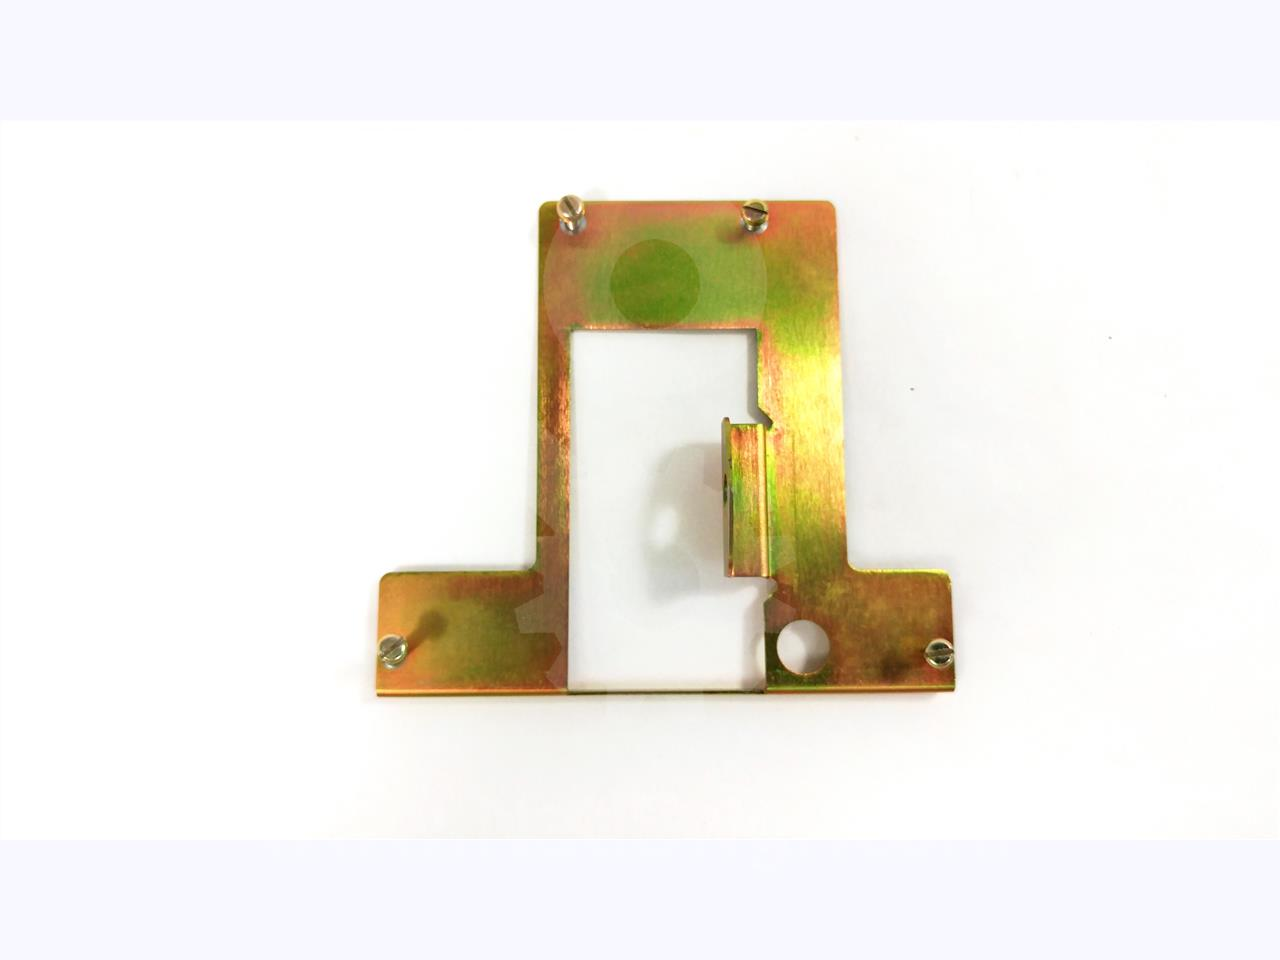 SGPLD GE / General Electric PADLOCK DEVICE ASSEMBLY FOR SPECTRA SG600